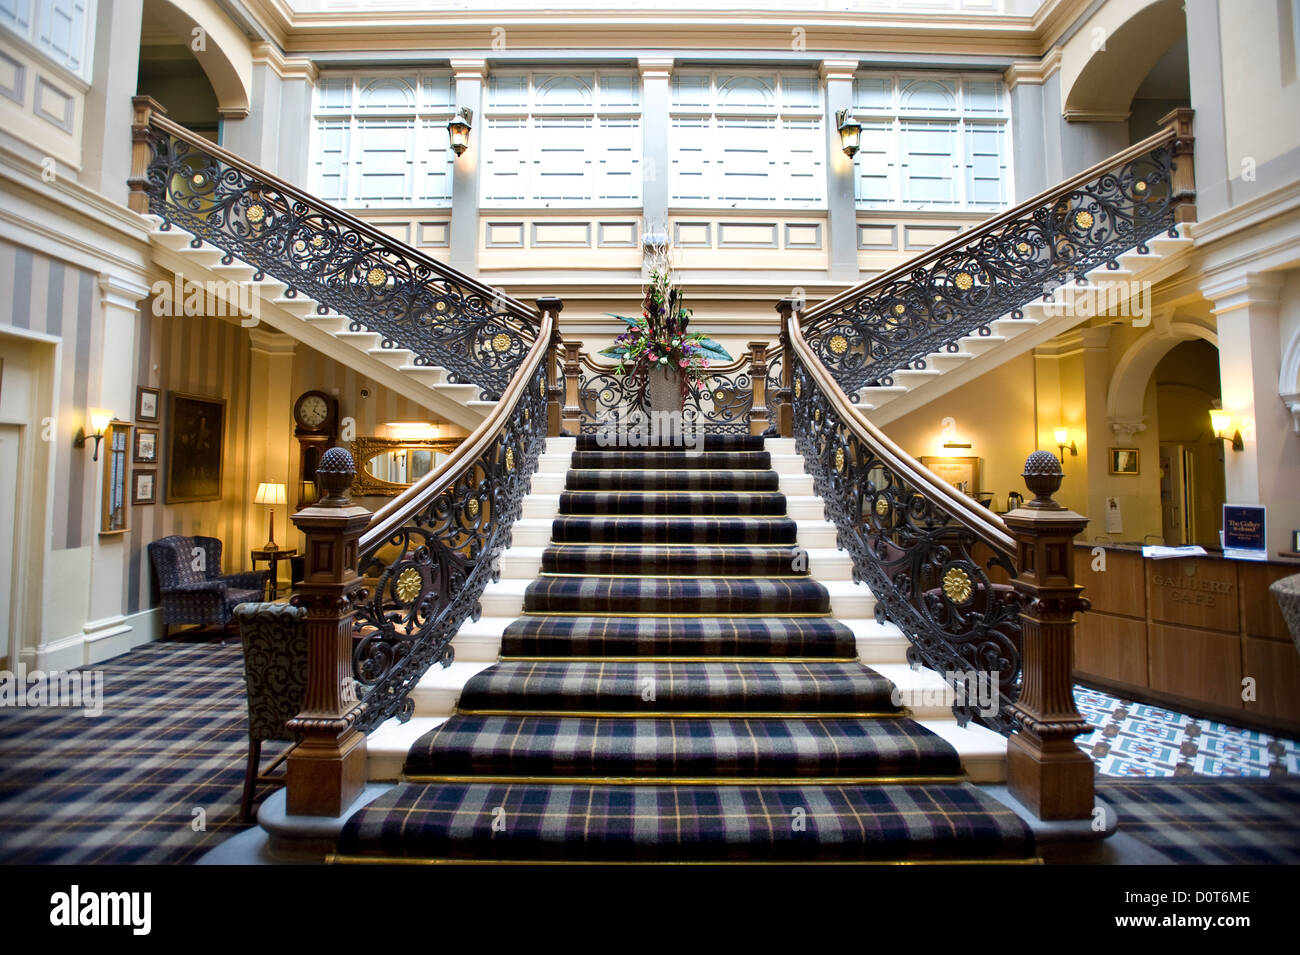 """The Grand staircase in the Highland Railway's """"Station"""